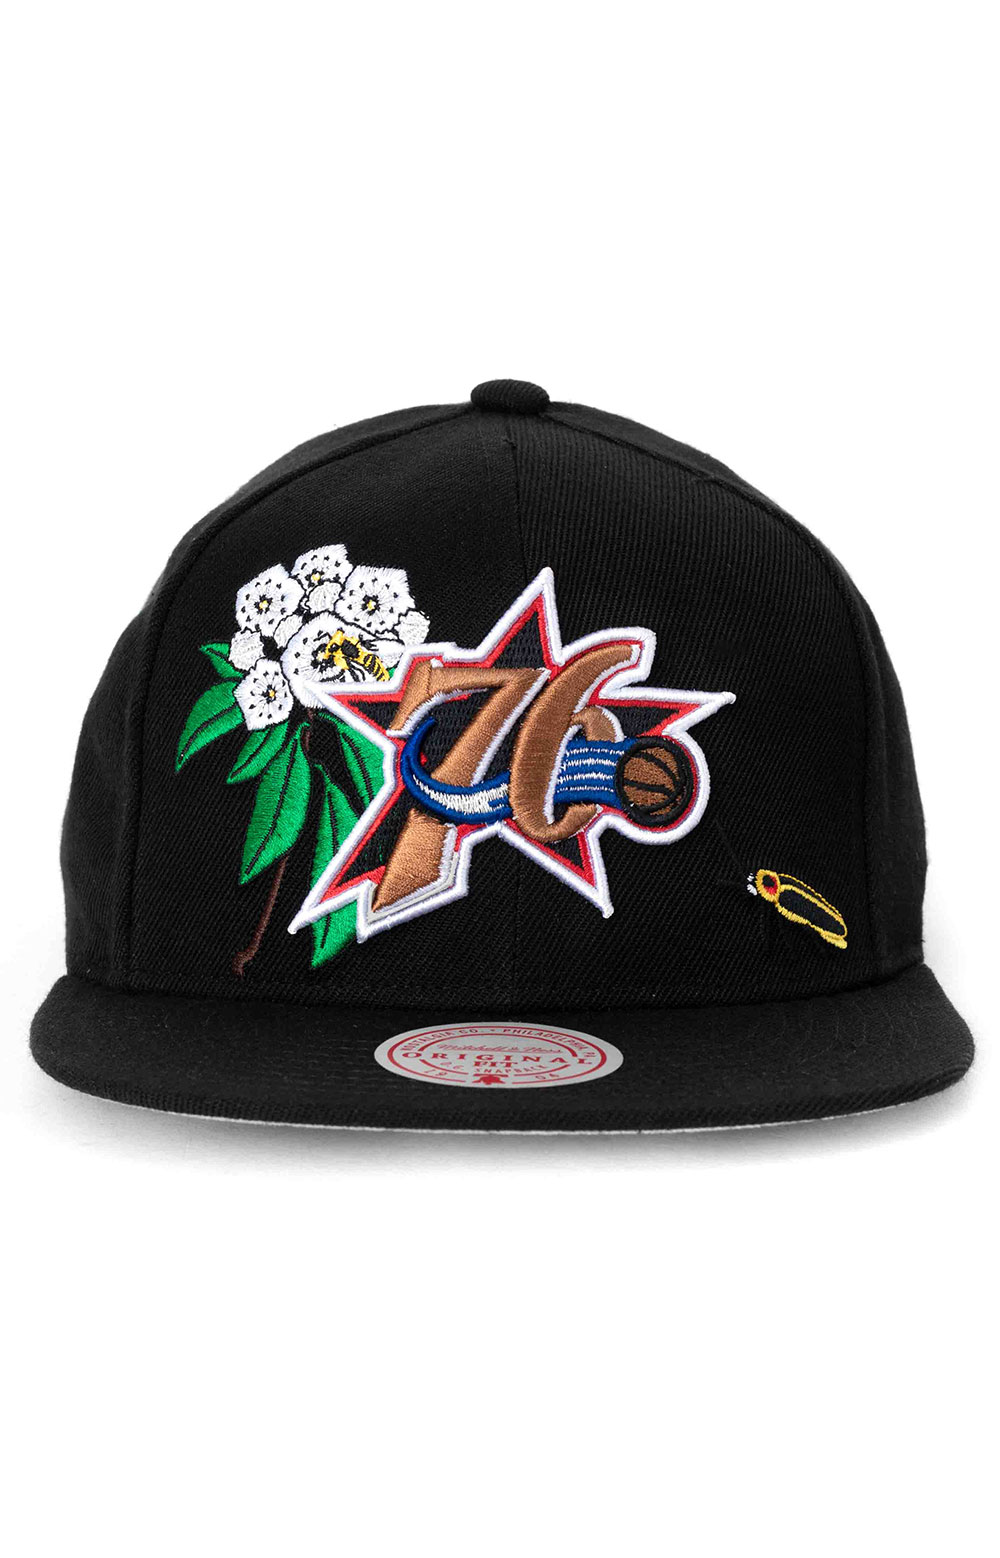 State Flower Snap-Back Hat - 76ers  2